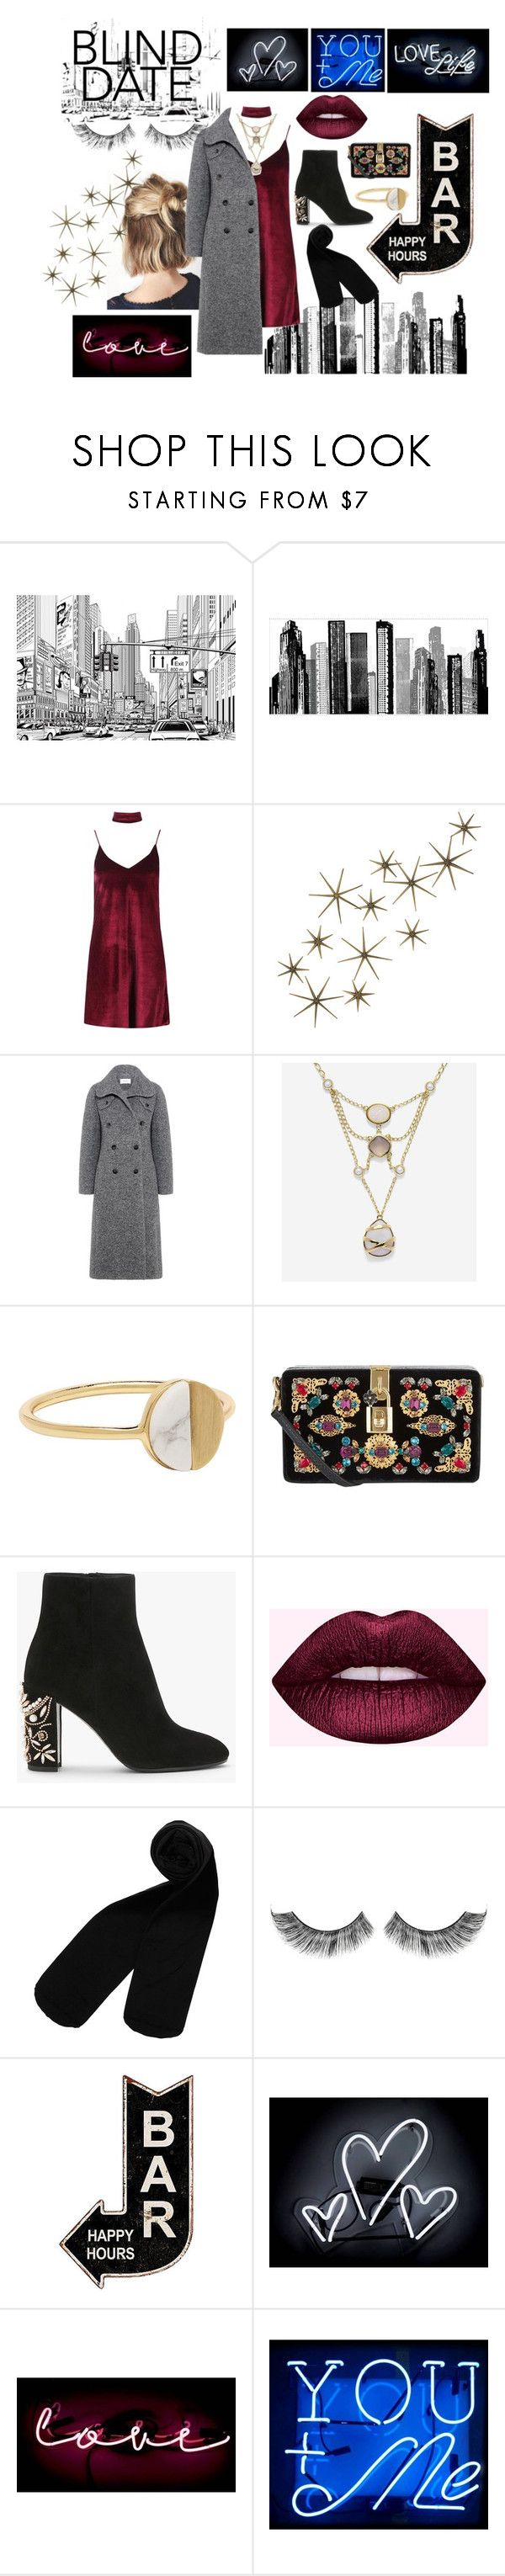 """""""love is blind"""" by suchajocundcompany ❤ liked on Polyvore featuring RoomMates Decor, Boohoo, Global Views, Carven, Cole Haan, Witchery, Dolce&Gabbana, Monki, Oliver Gal Artist Co. and DateNight"""